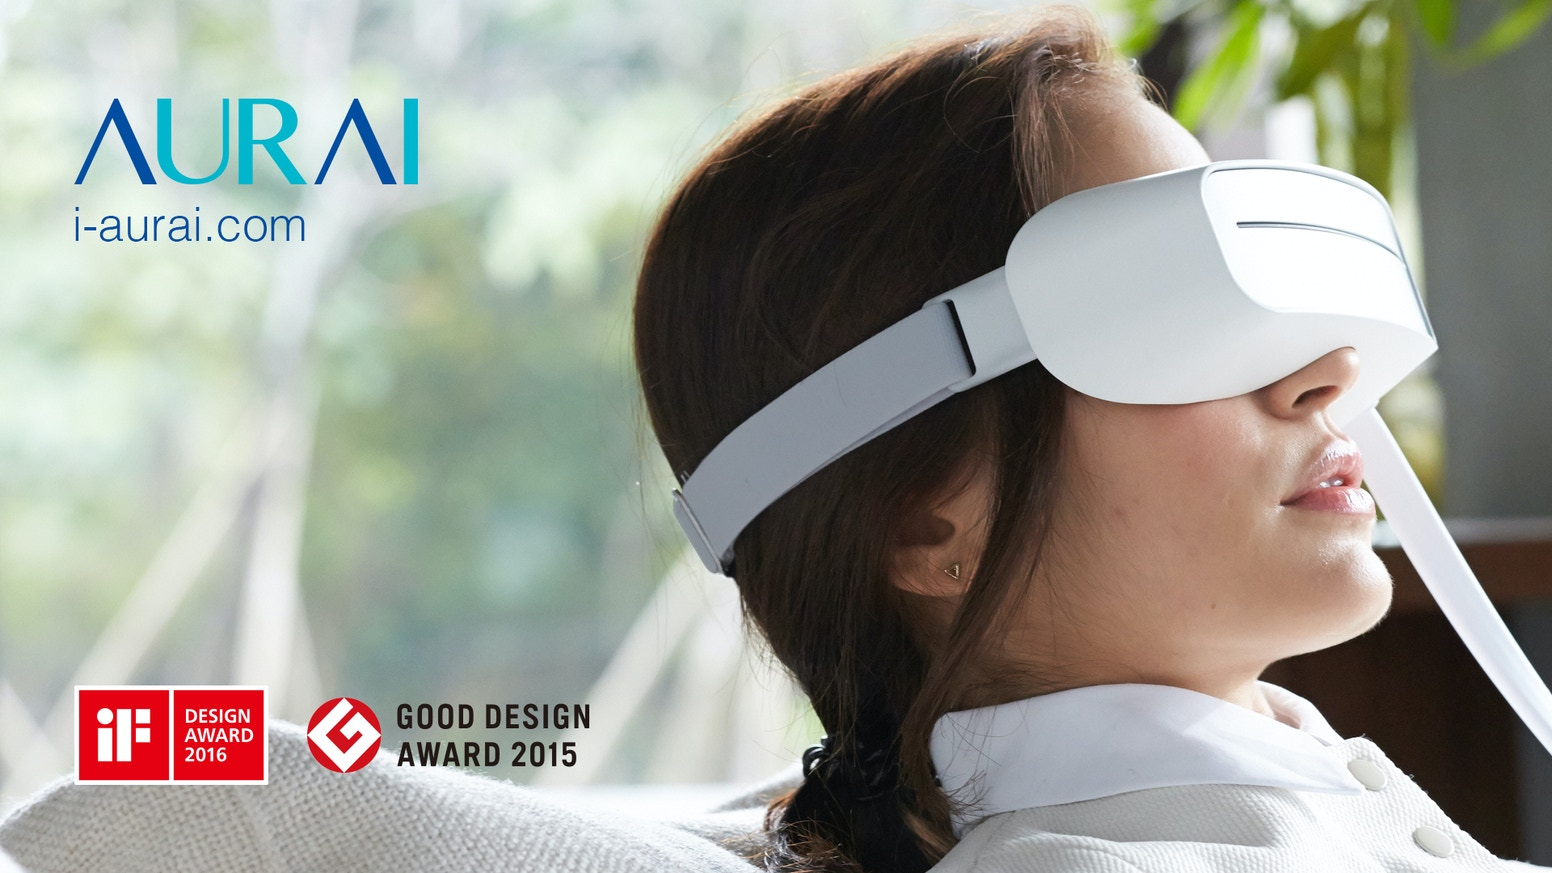 Aurai - The first wearable water technology to protect your eyes from modern technology